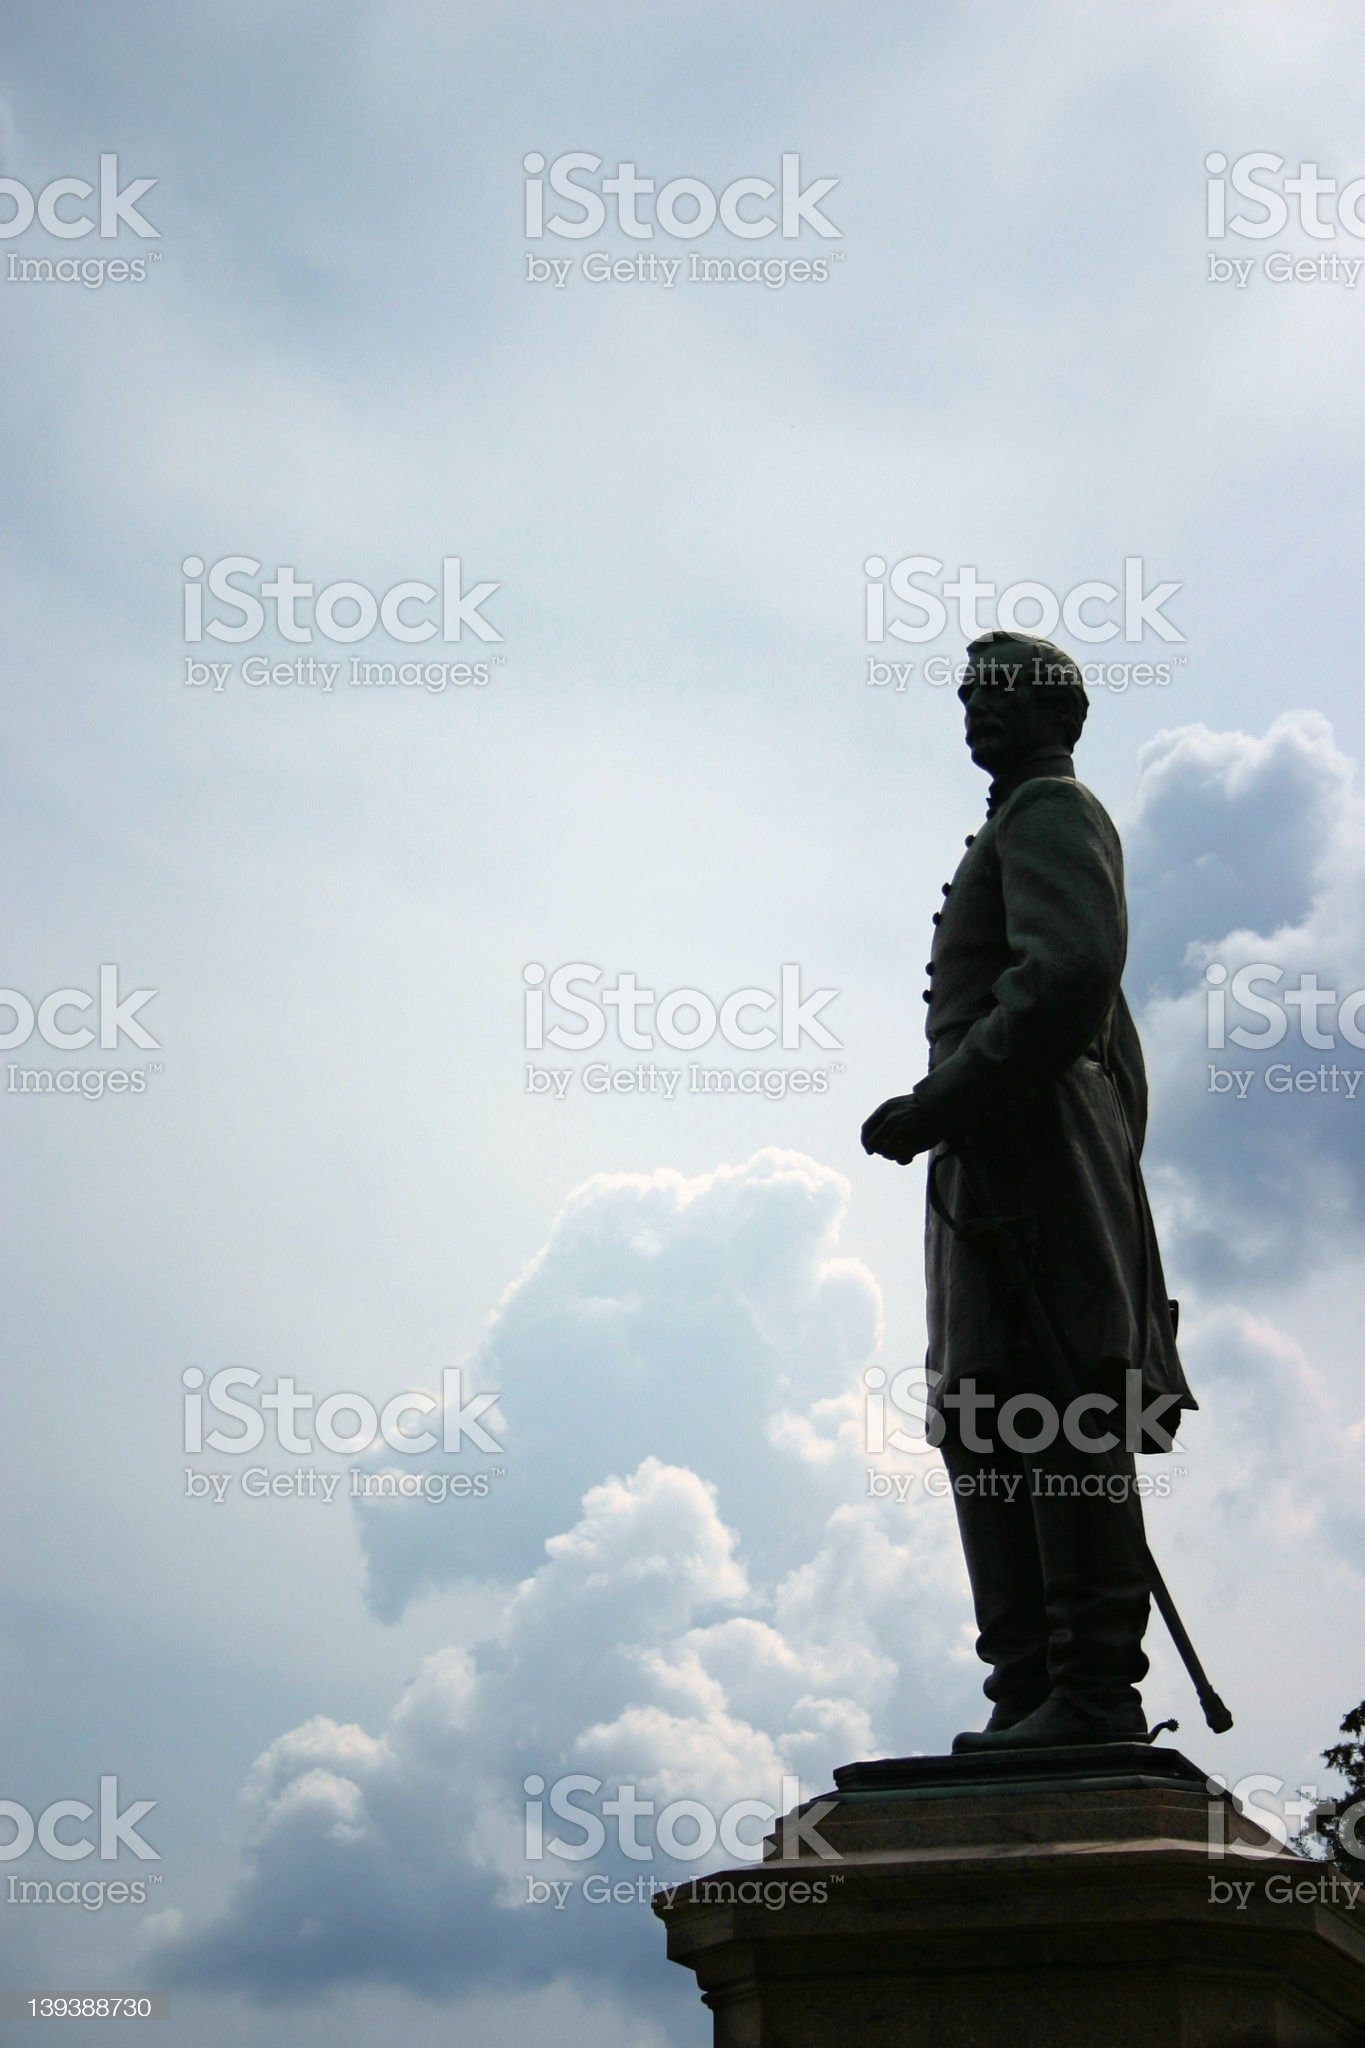 Civil War statue royalty-free stock photo